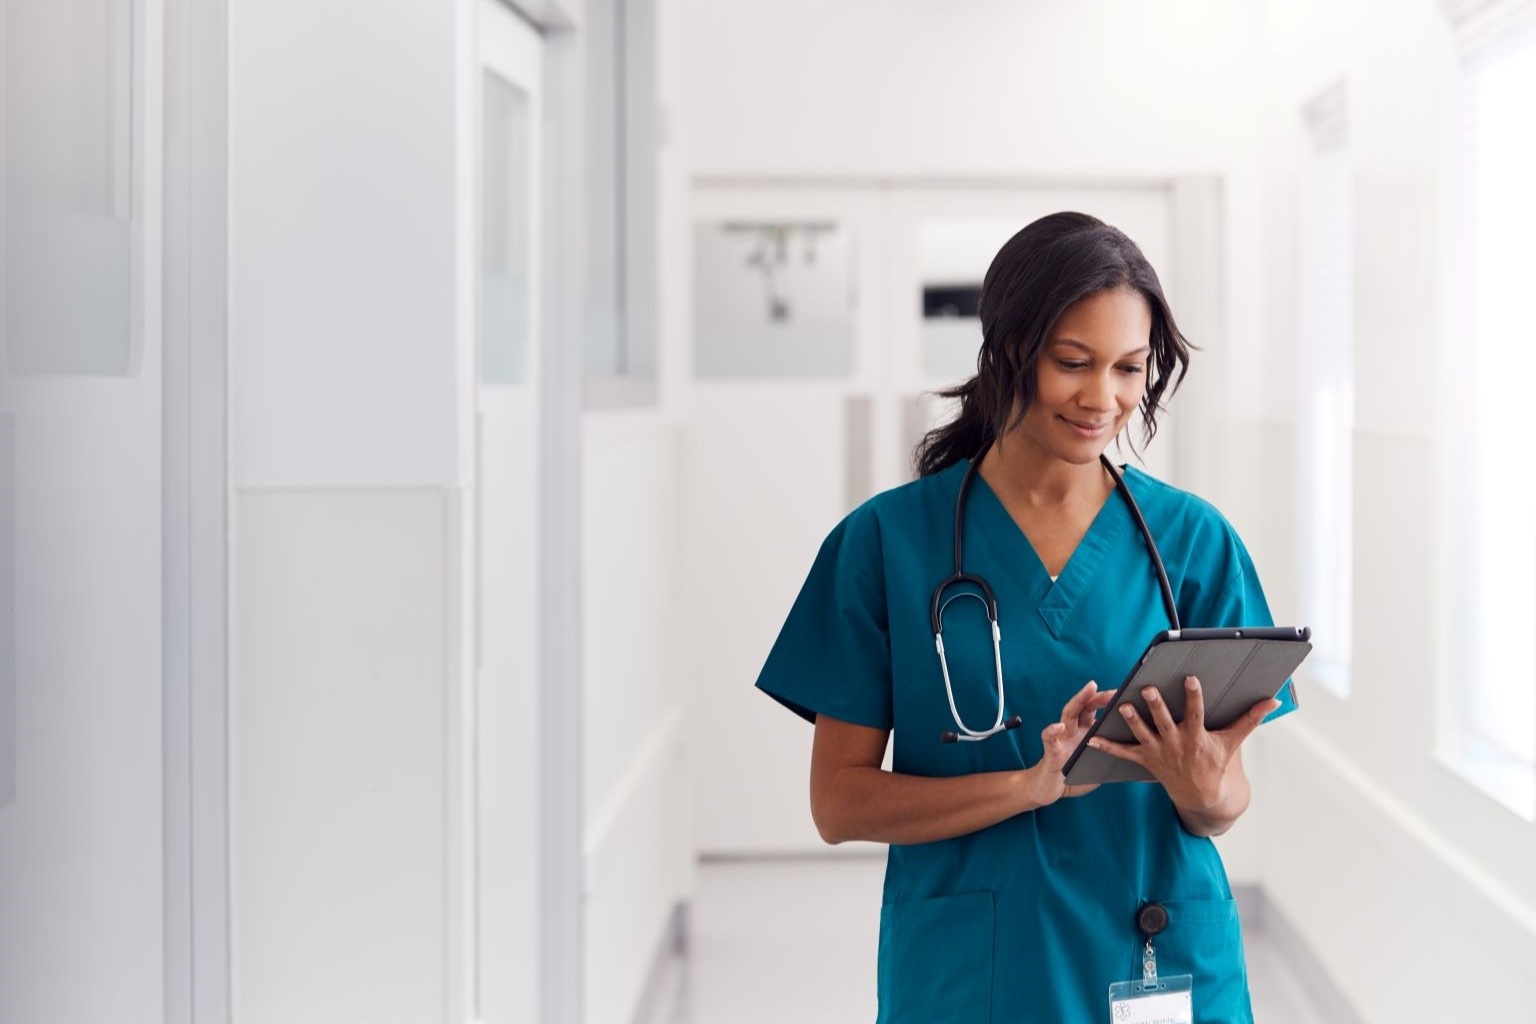 Nurse in hospital hallway reading on a tablet device